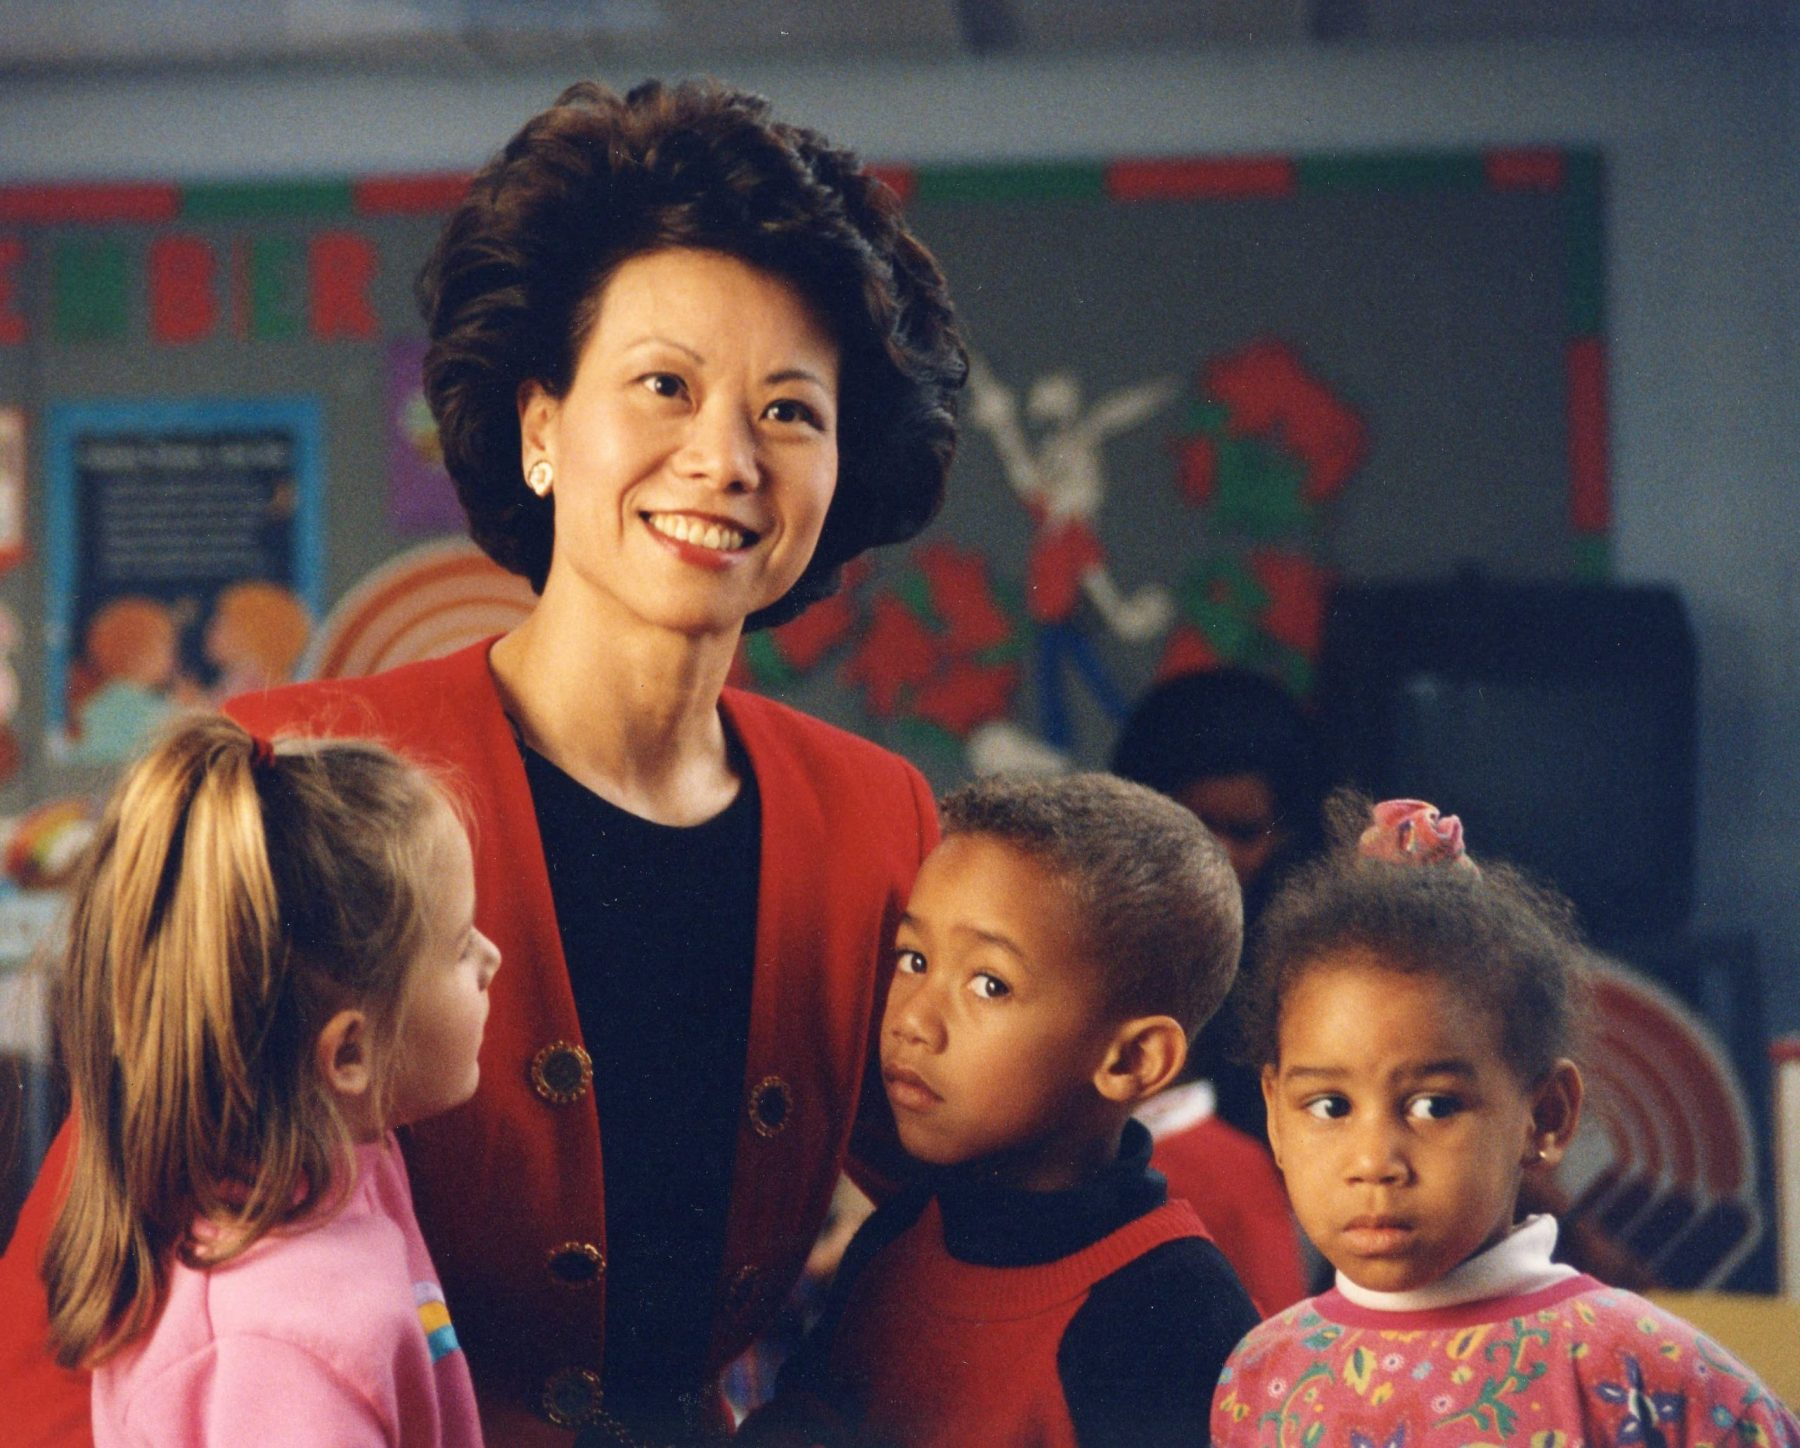 United Way of America President & CEO Elaine Chao visiting a United Way funded child daycare center.